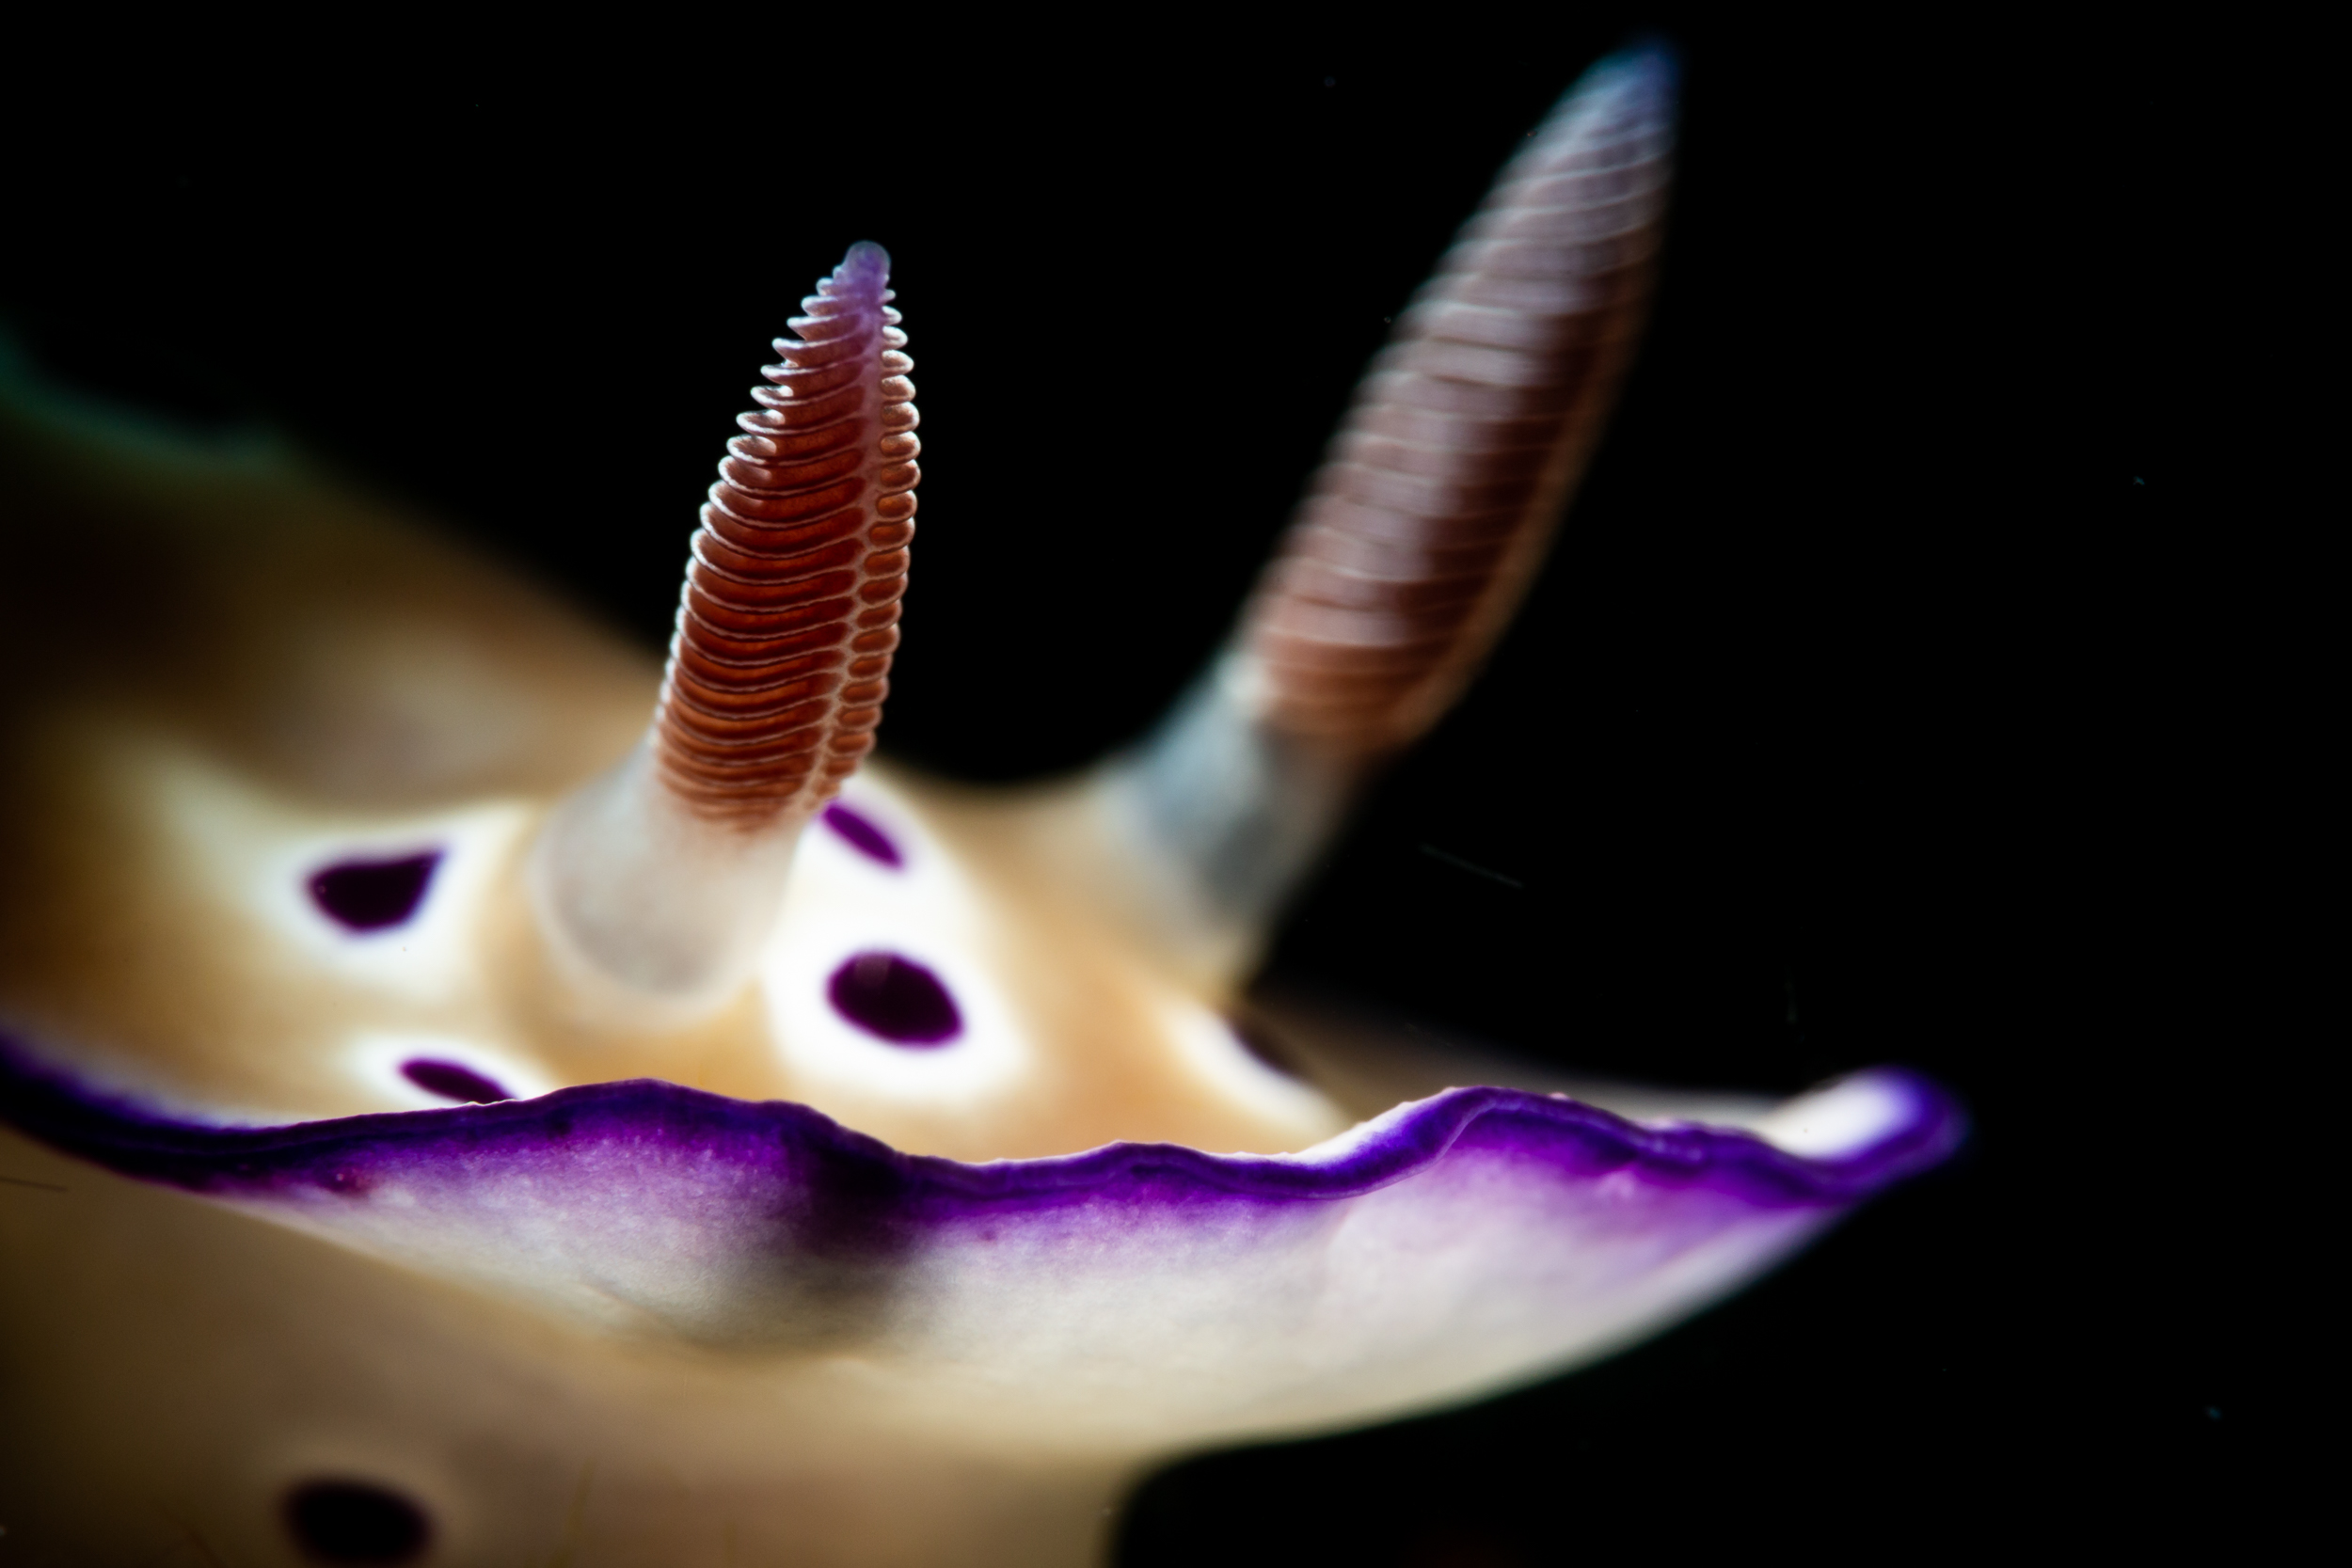 Chromodoris sp. (Anilao, Philippines) CREDIT: ERIK LUKAS / coral reef image bank